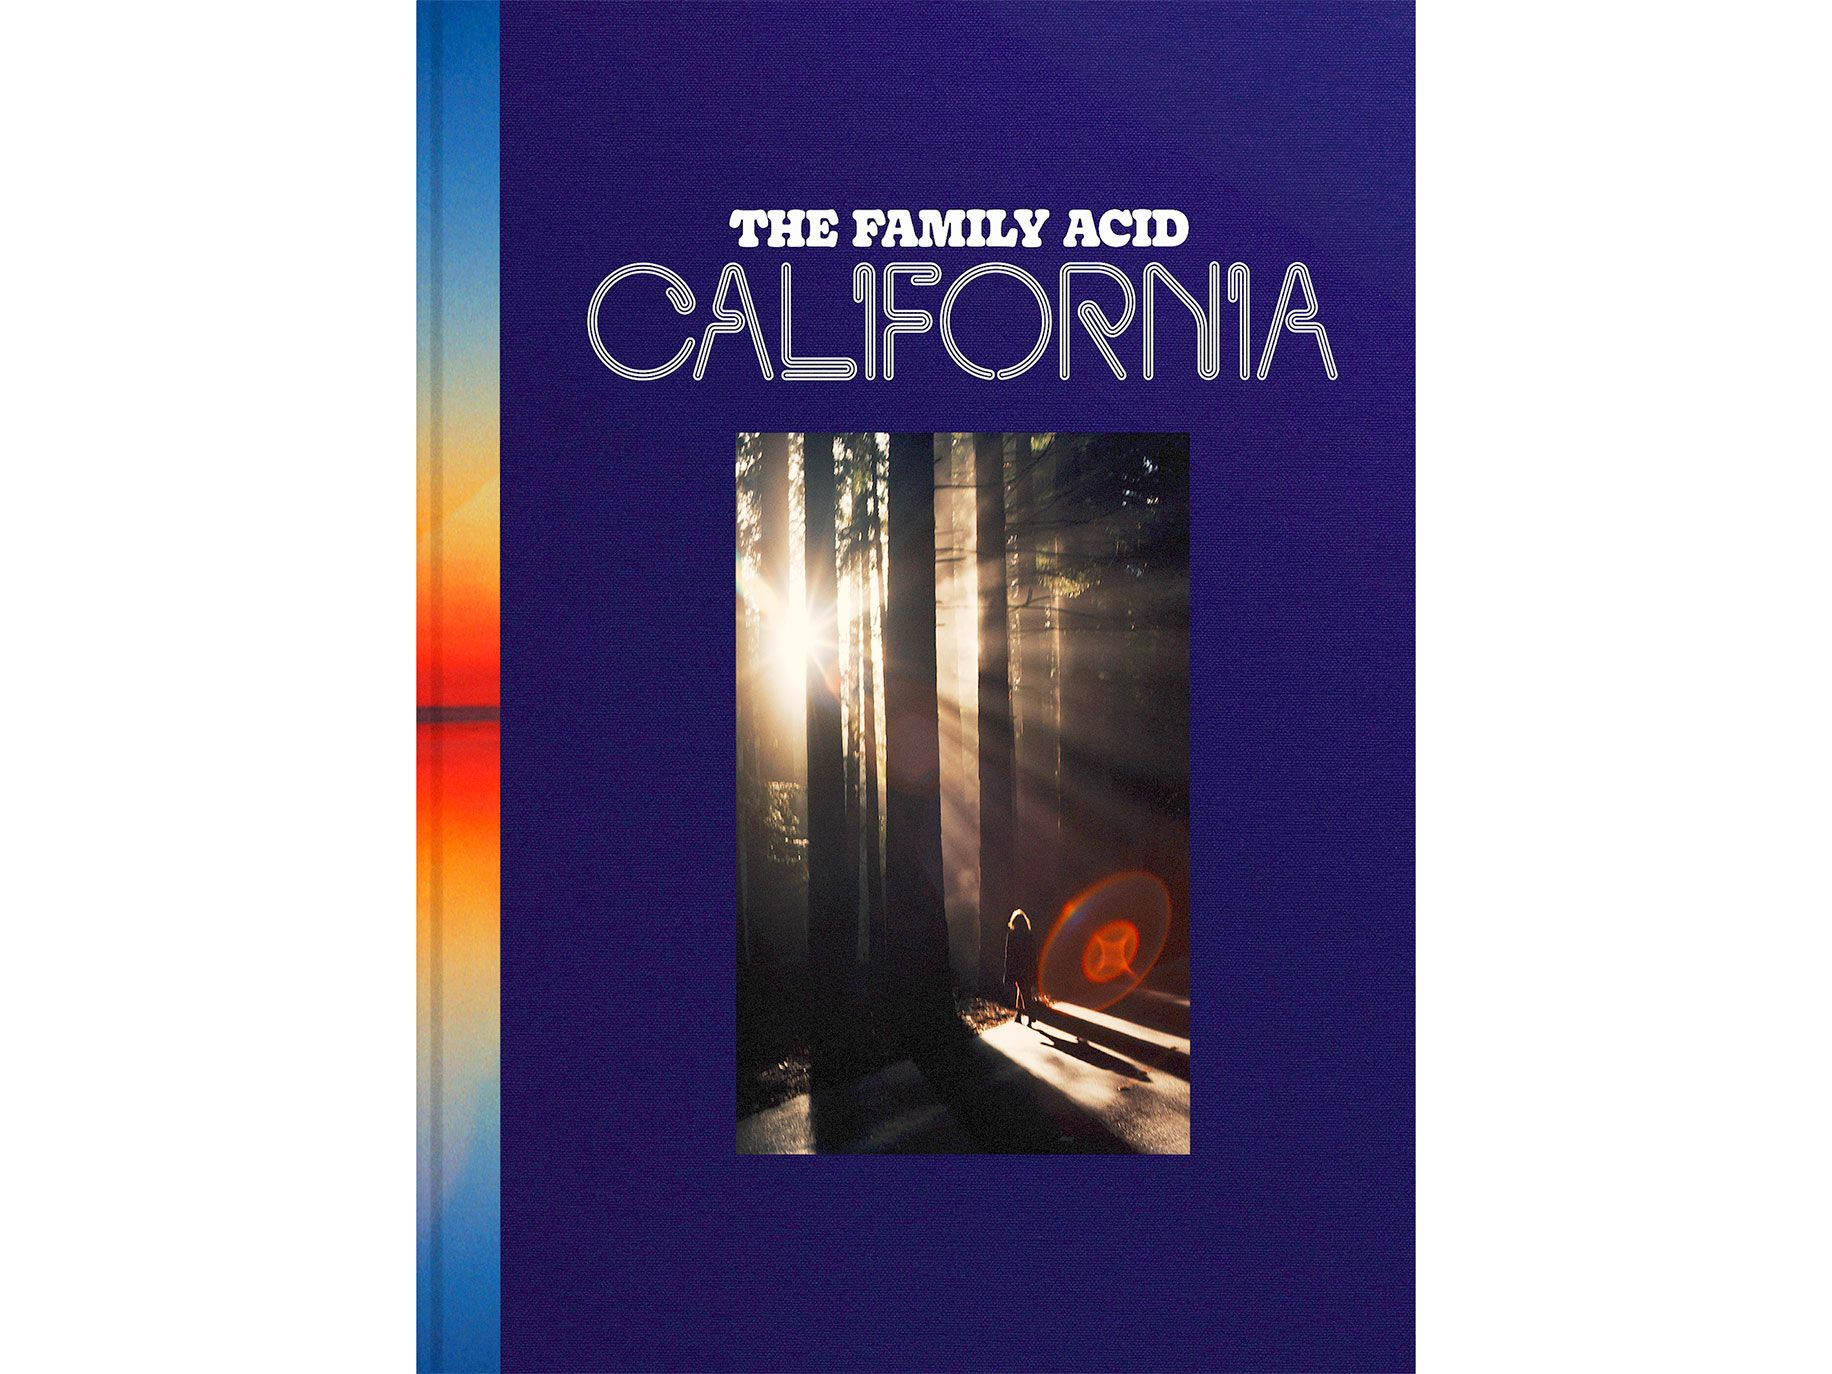 The Family Acid: California, by Roger Steffens, edited by Kate Steffens, Ozma Records, 192 pages, $60